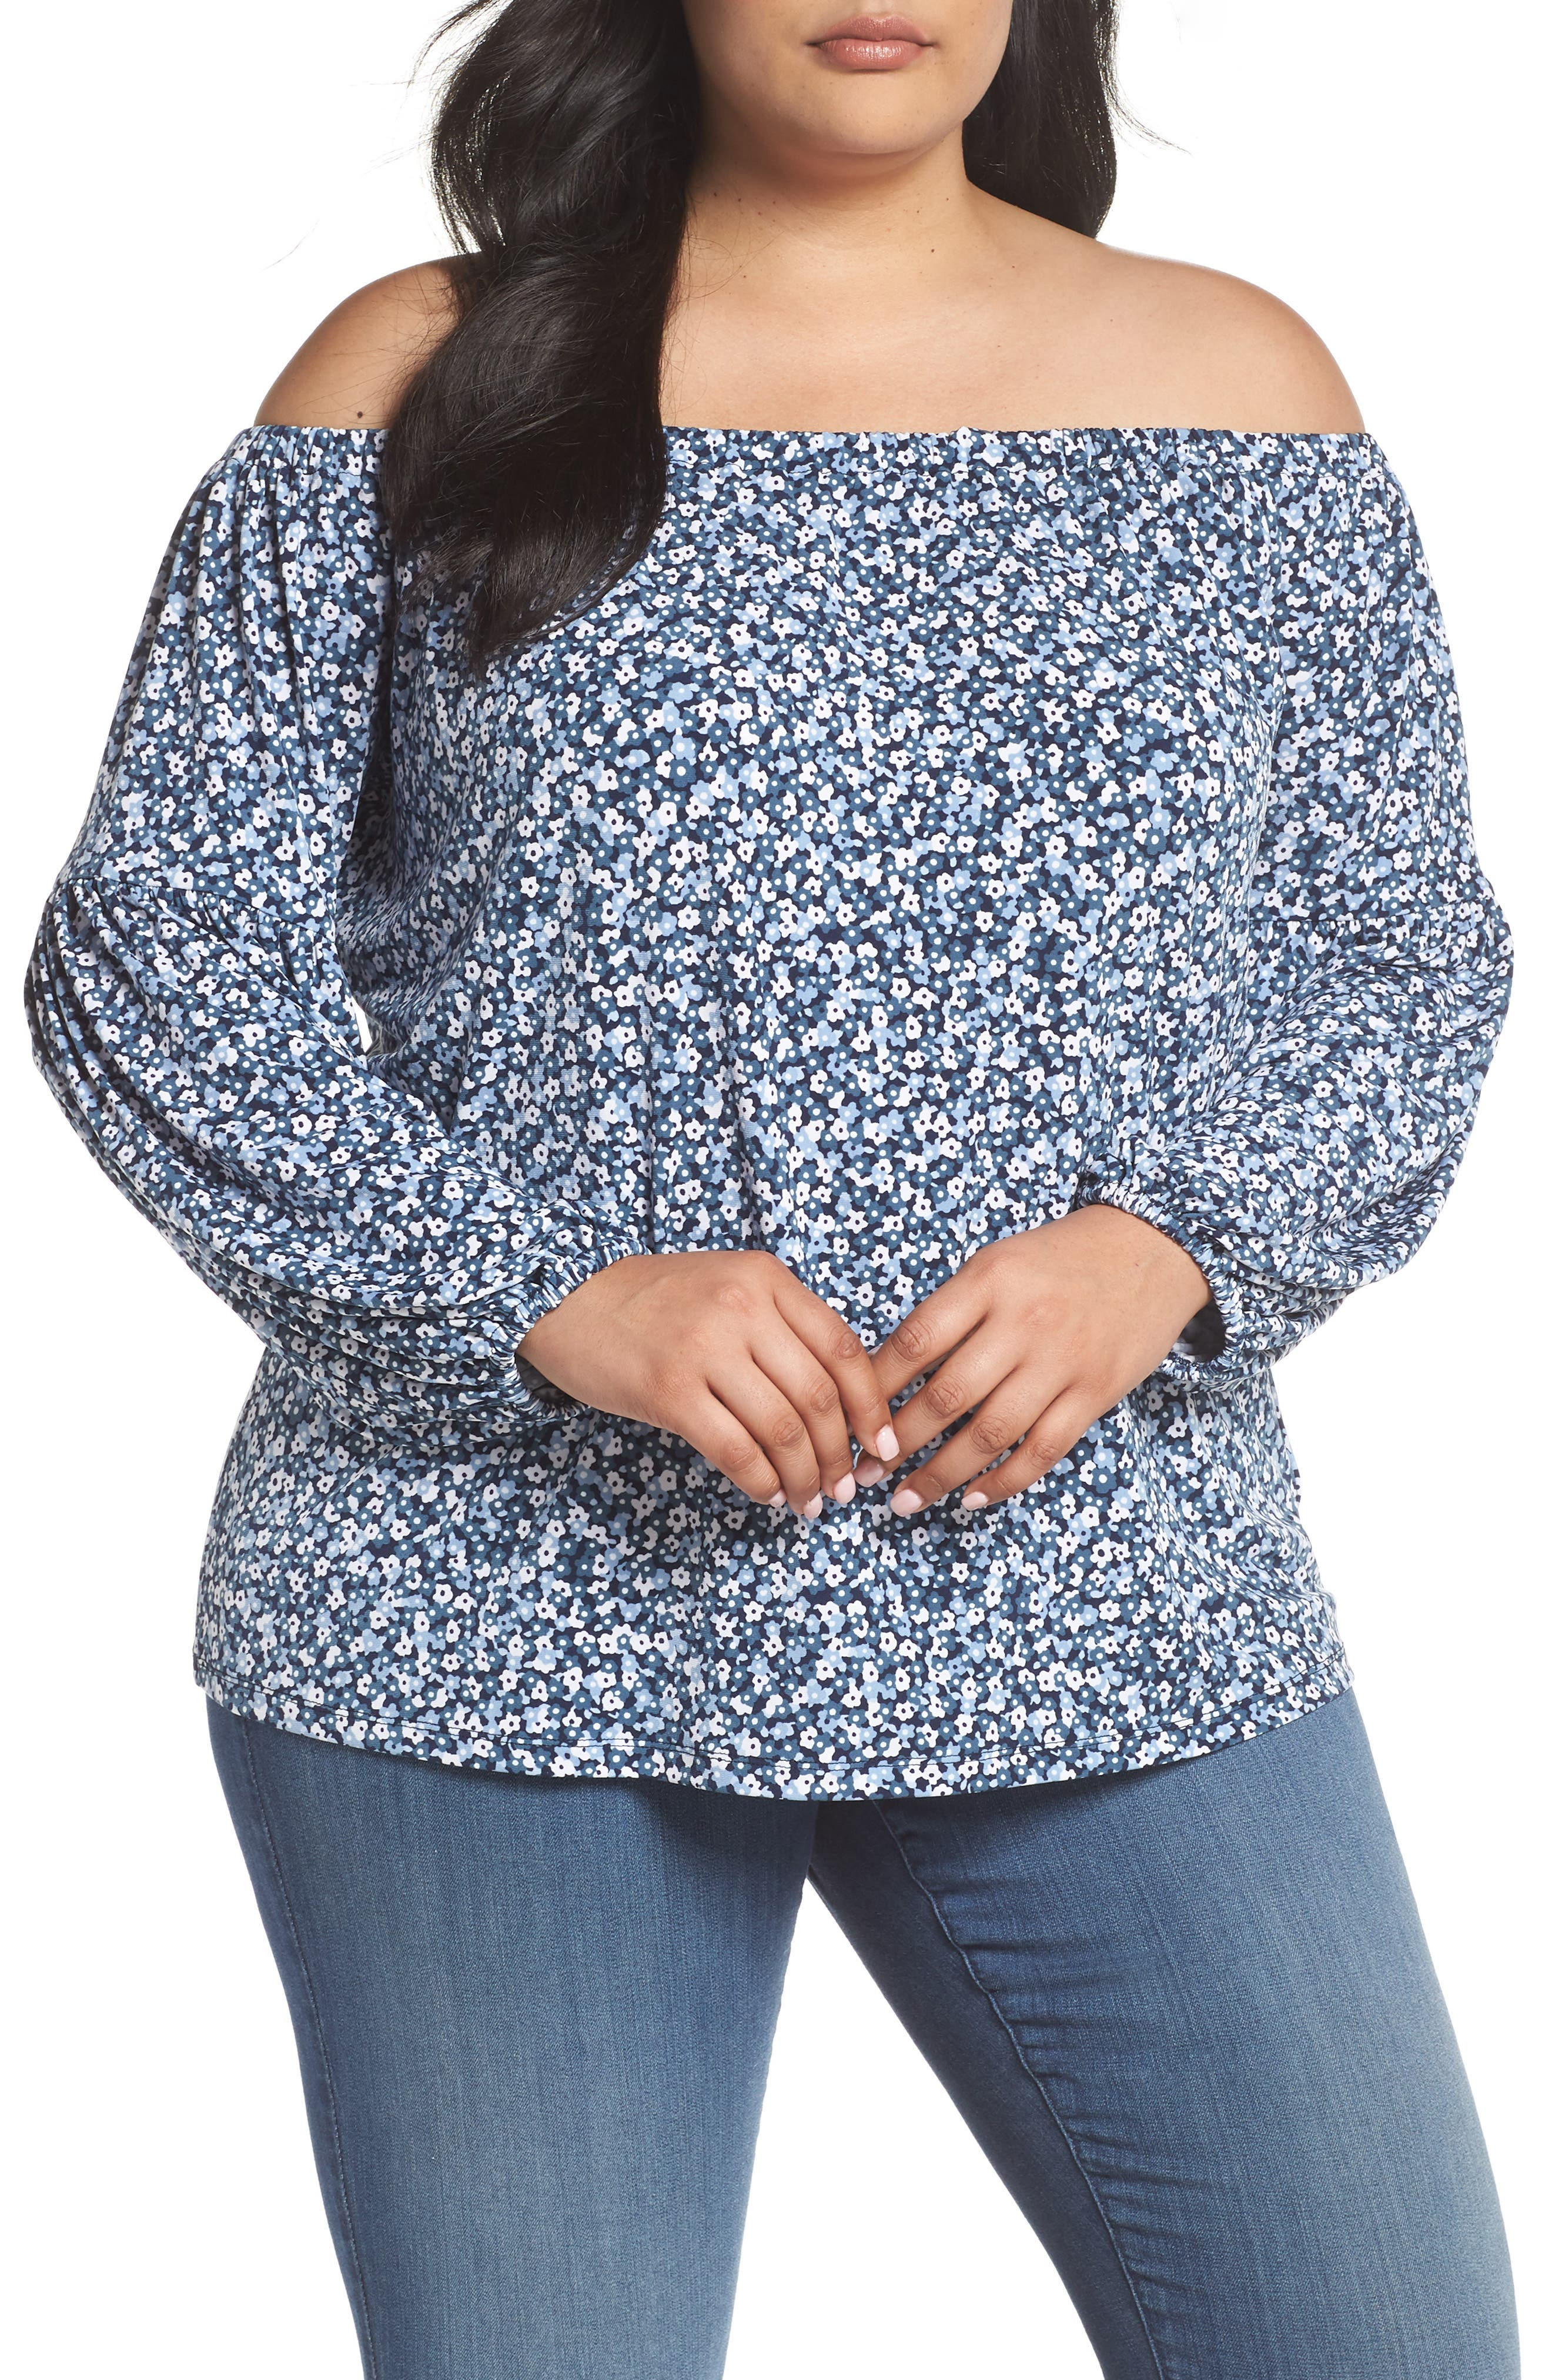 Collage Floral Off the Shoulder Top,                             Main thumbnail 1, color,                             451